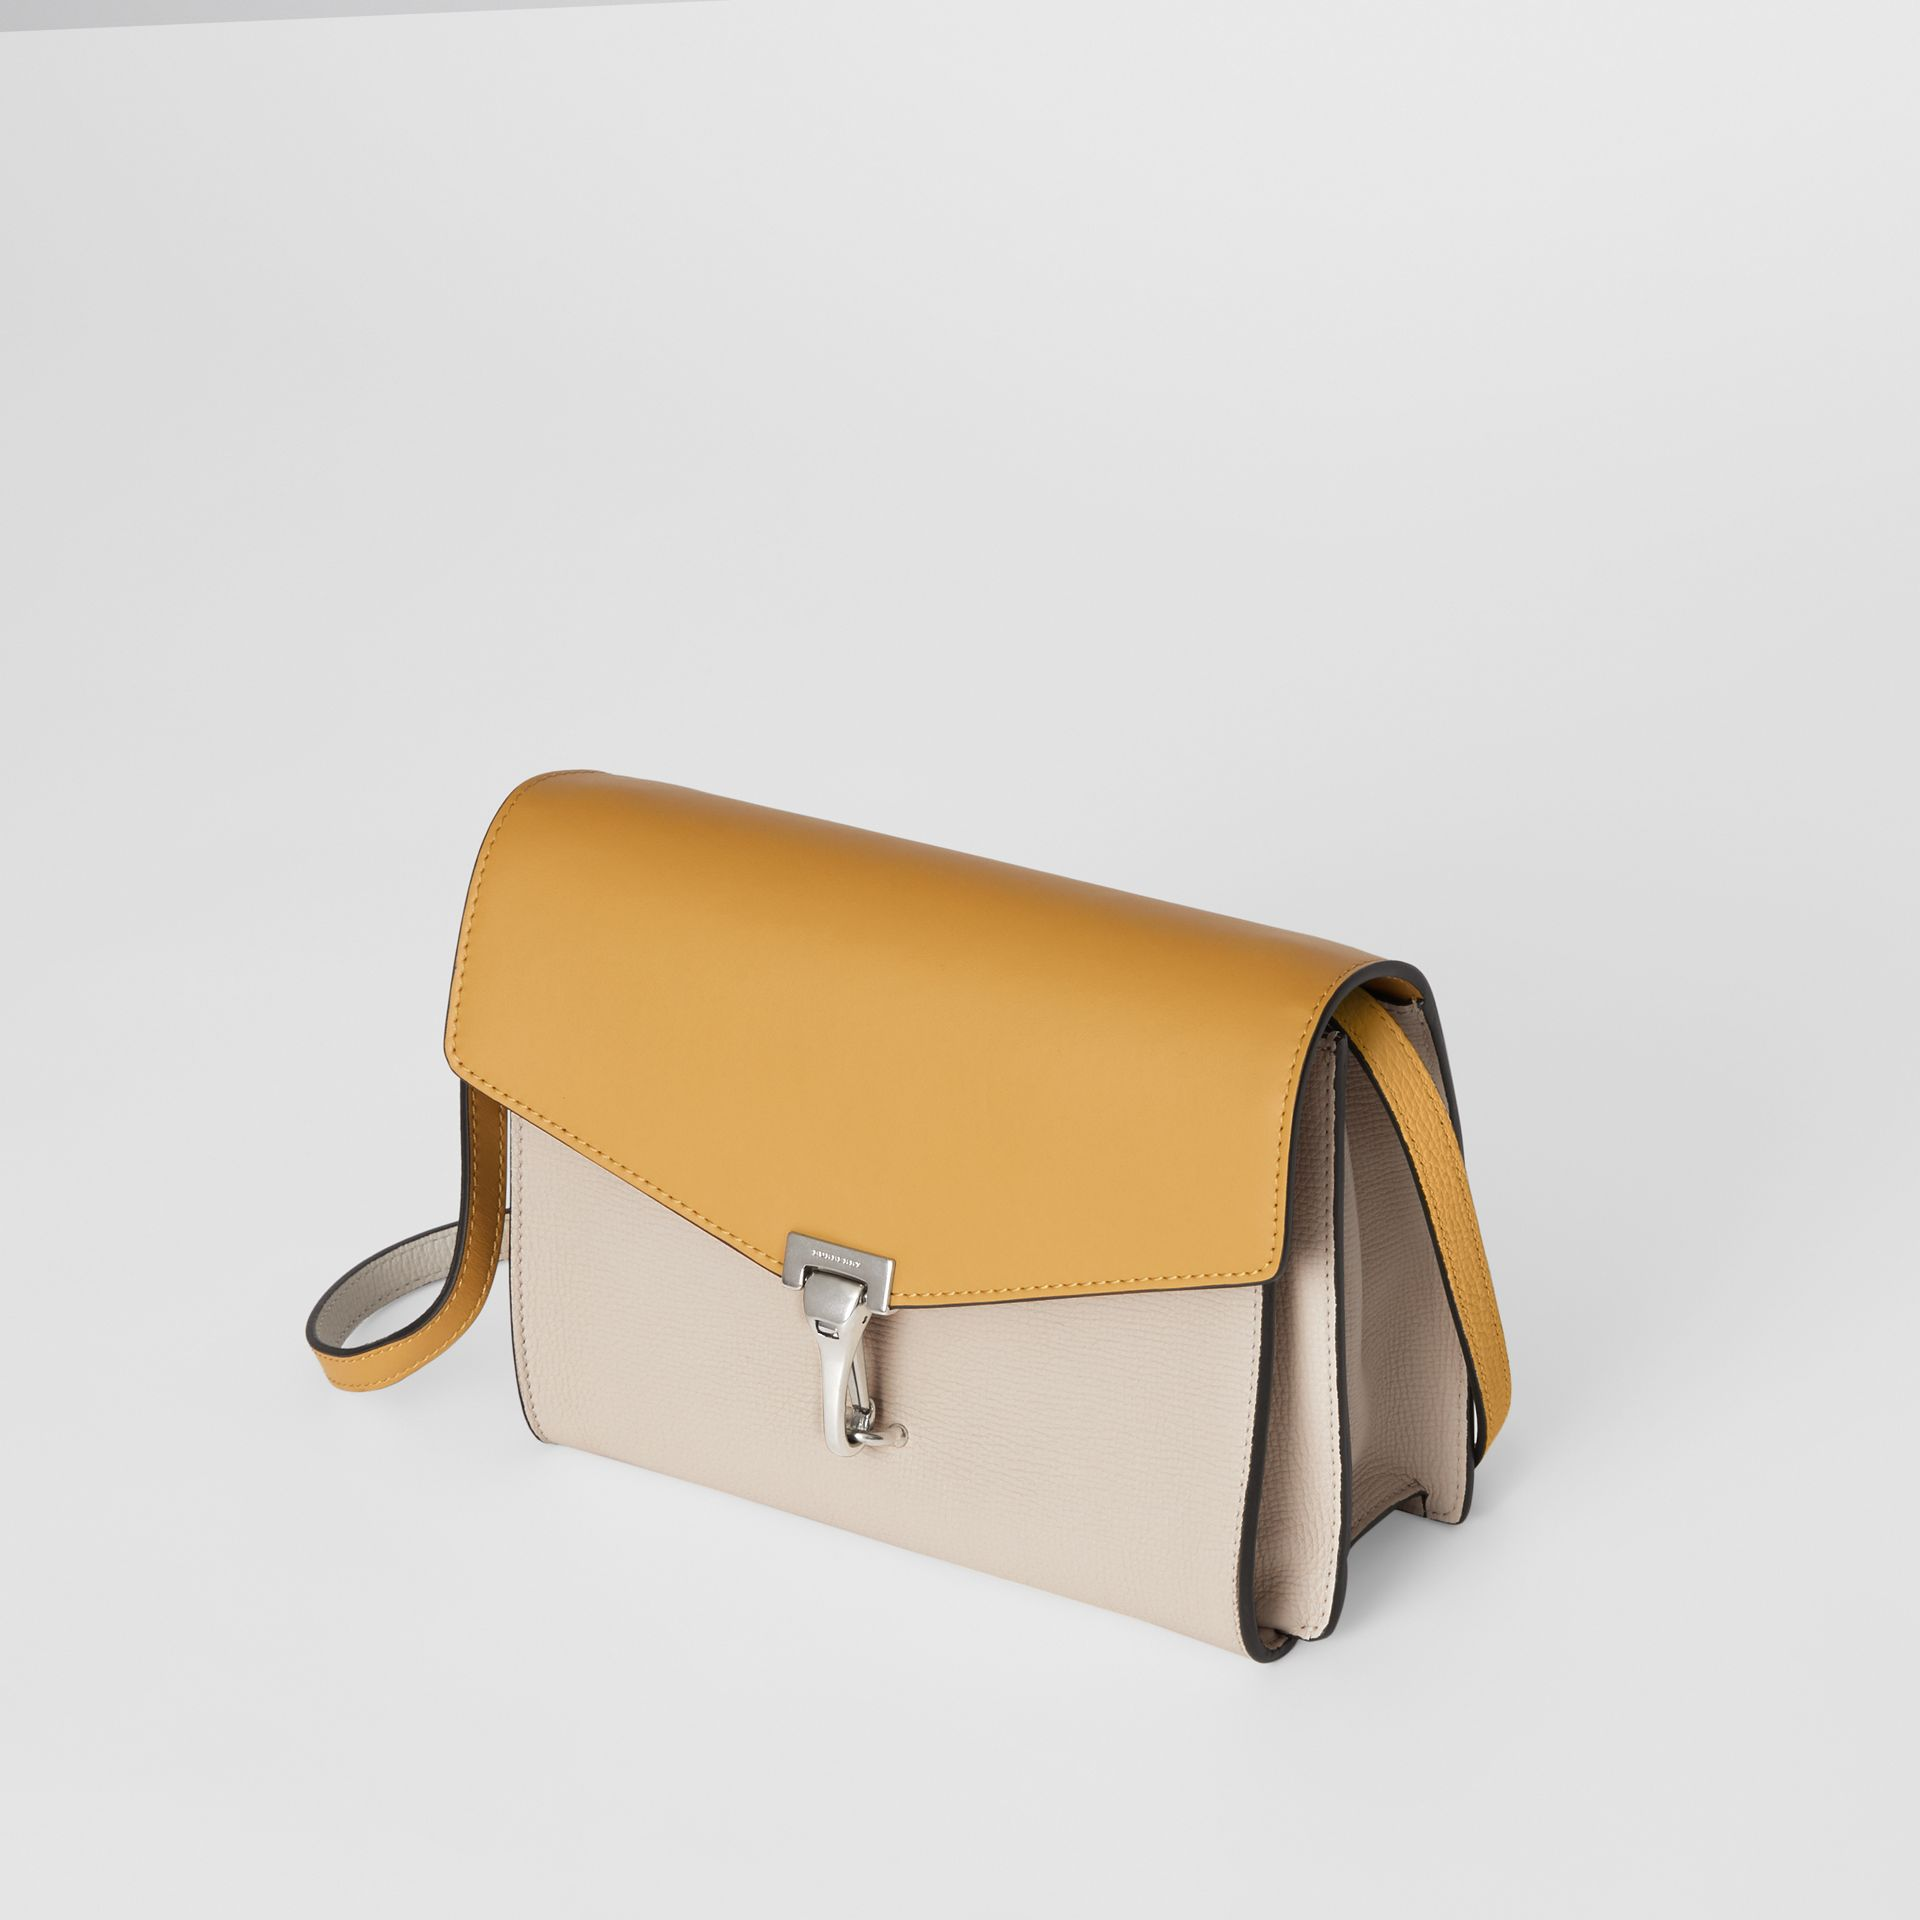 Two-tone Leather Crossbody Bag in Limestone/cornflower Yellow - Women | Burberry Singapore - gallery image 4